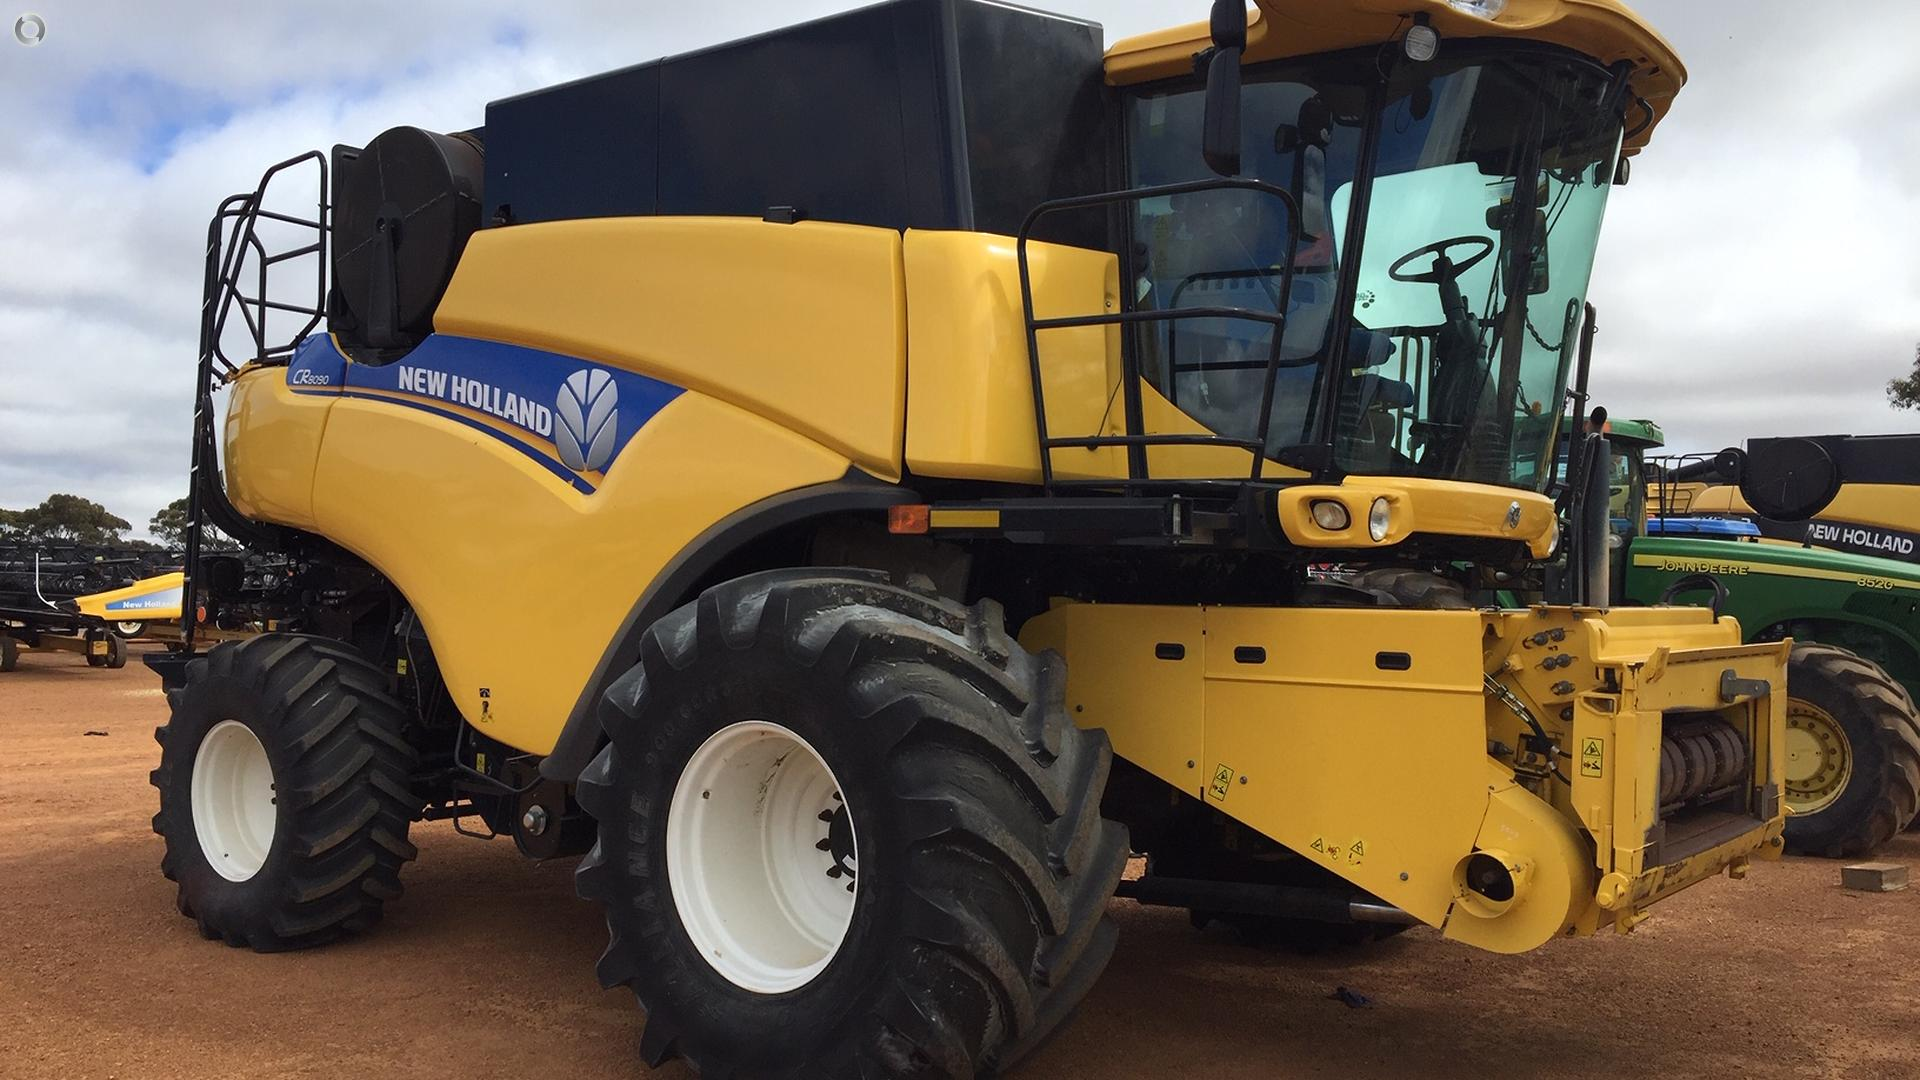 2013 New Holland CR8090 Combine Harvester